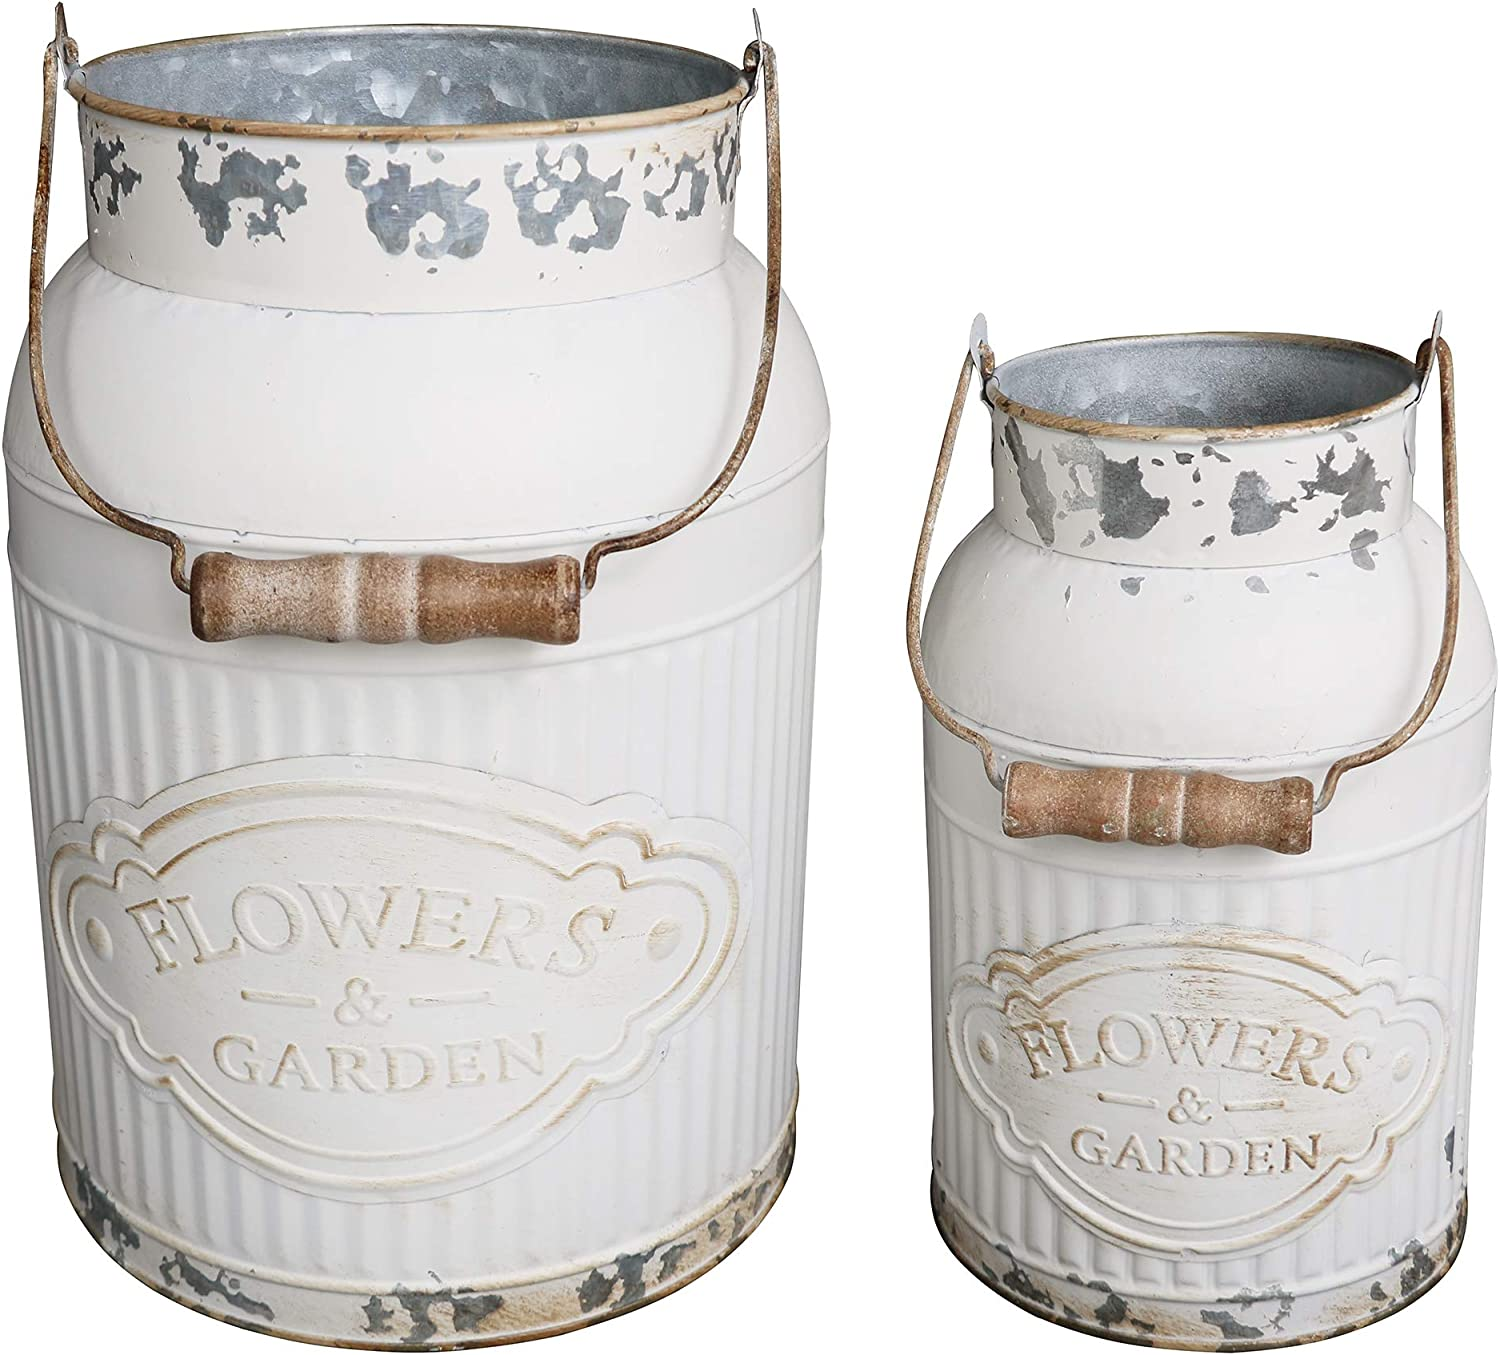 HyFanStr French Style White Milk Can Shabby Chic Metal Vase Flowers Bucket Rustic Pitcher Jug for Home Garden Decor (Small & Large)